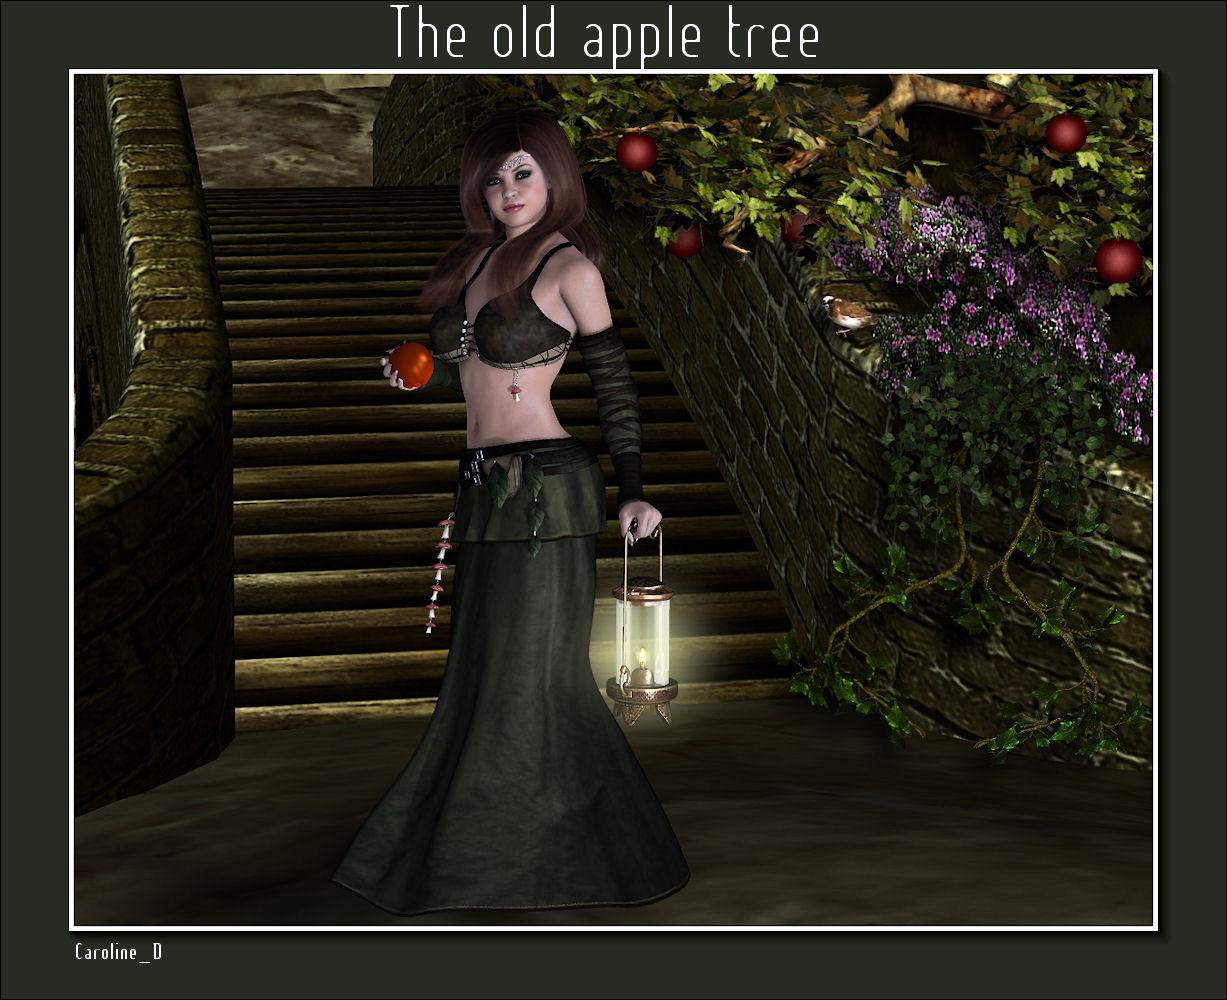 The old apple tree by Caroline_D